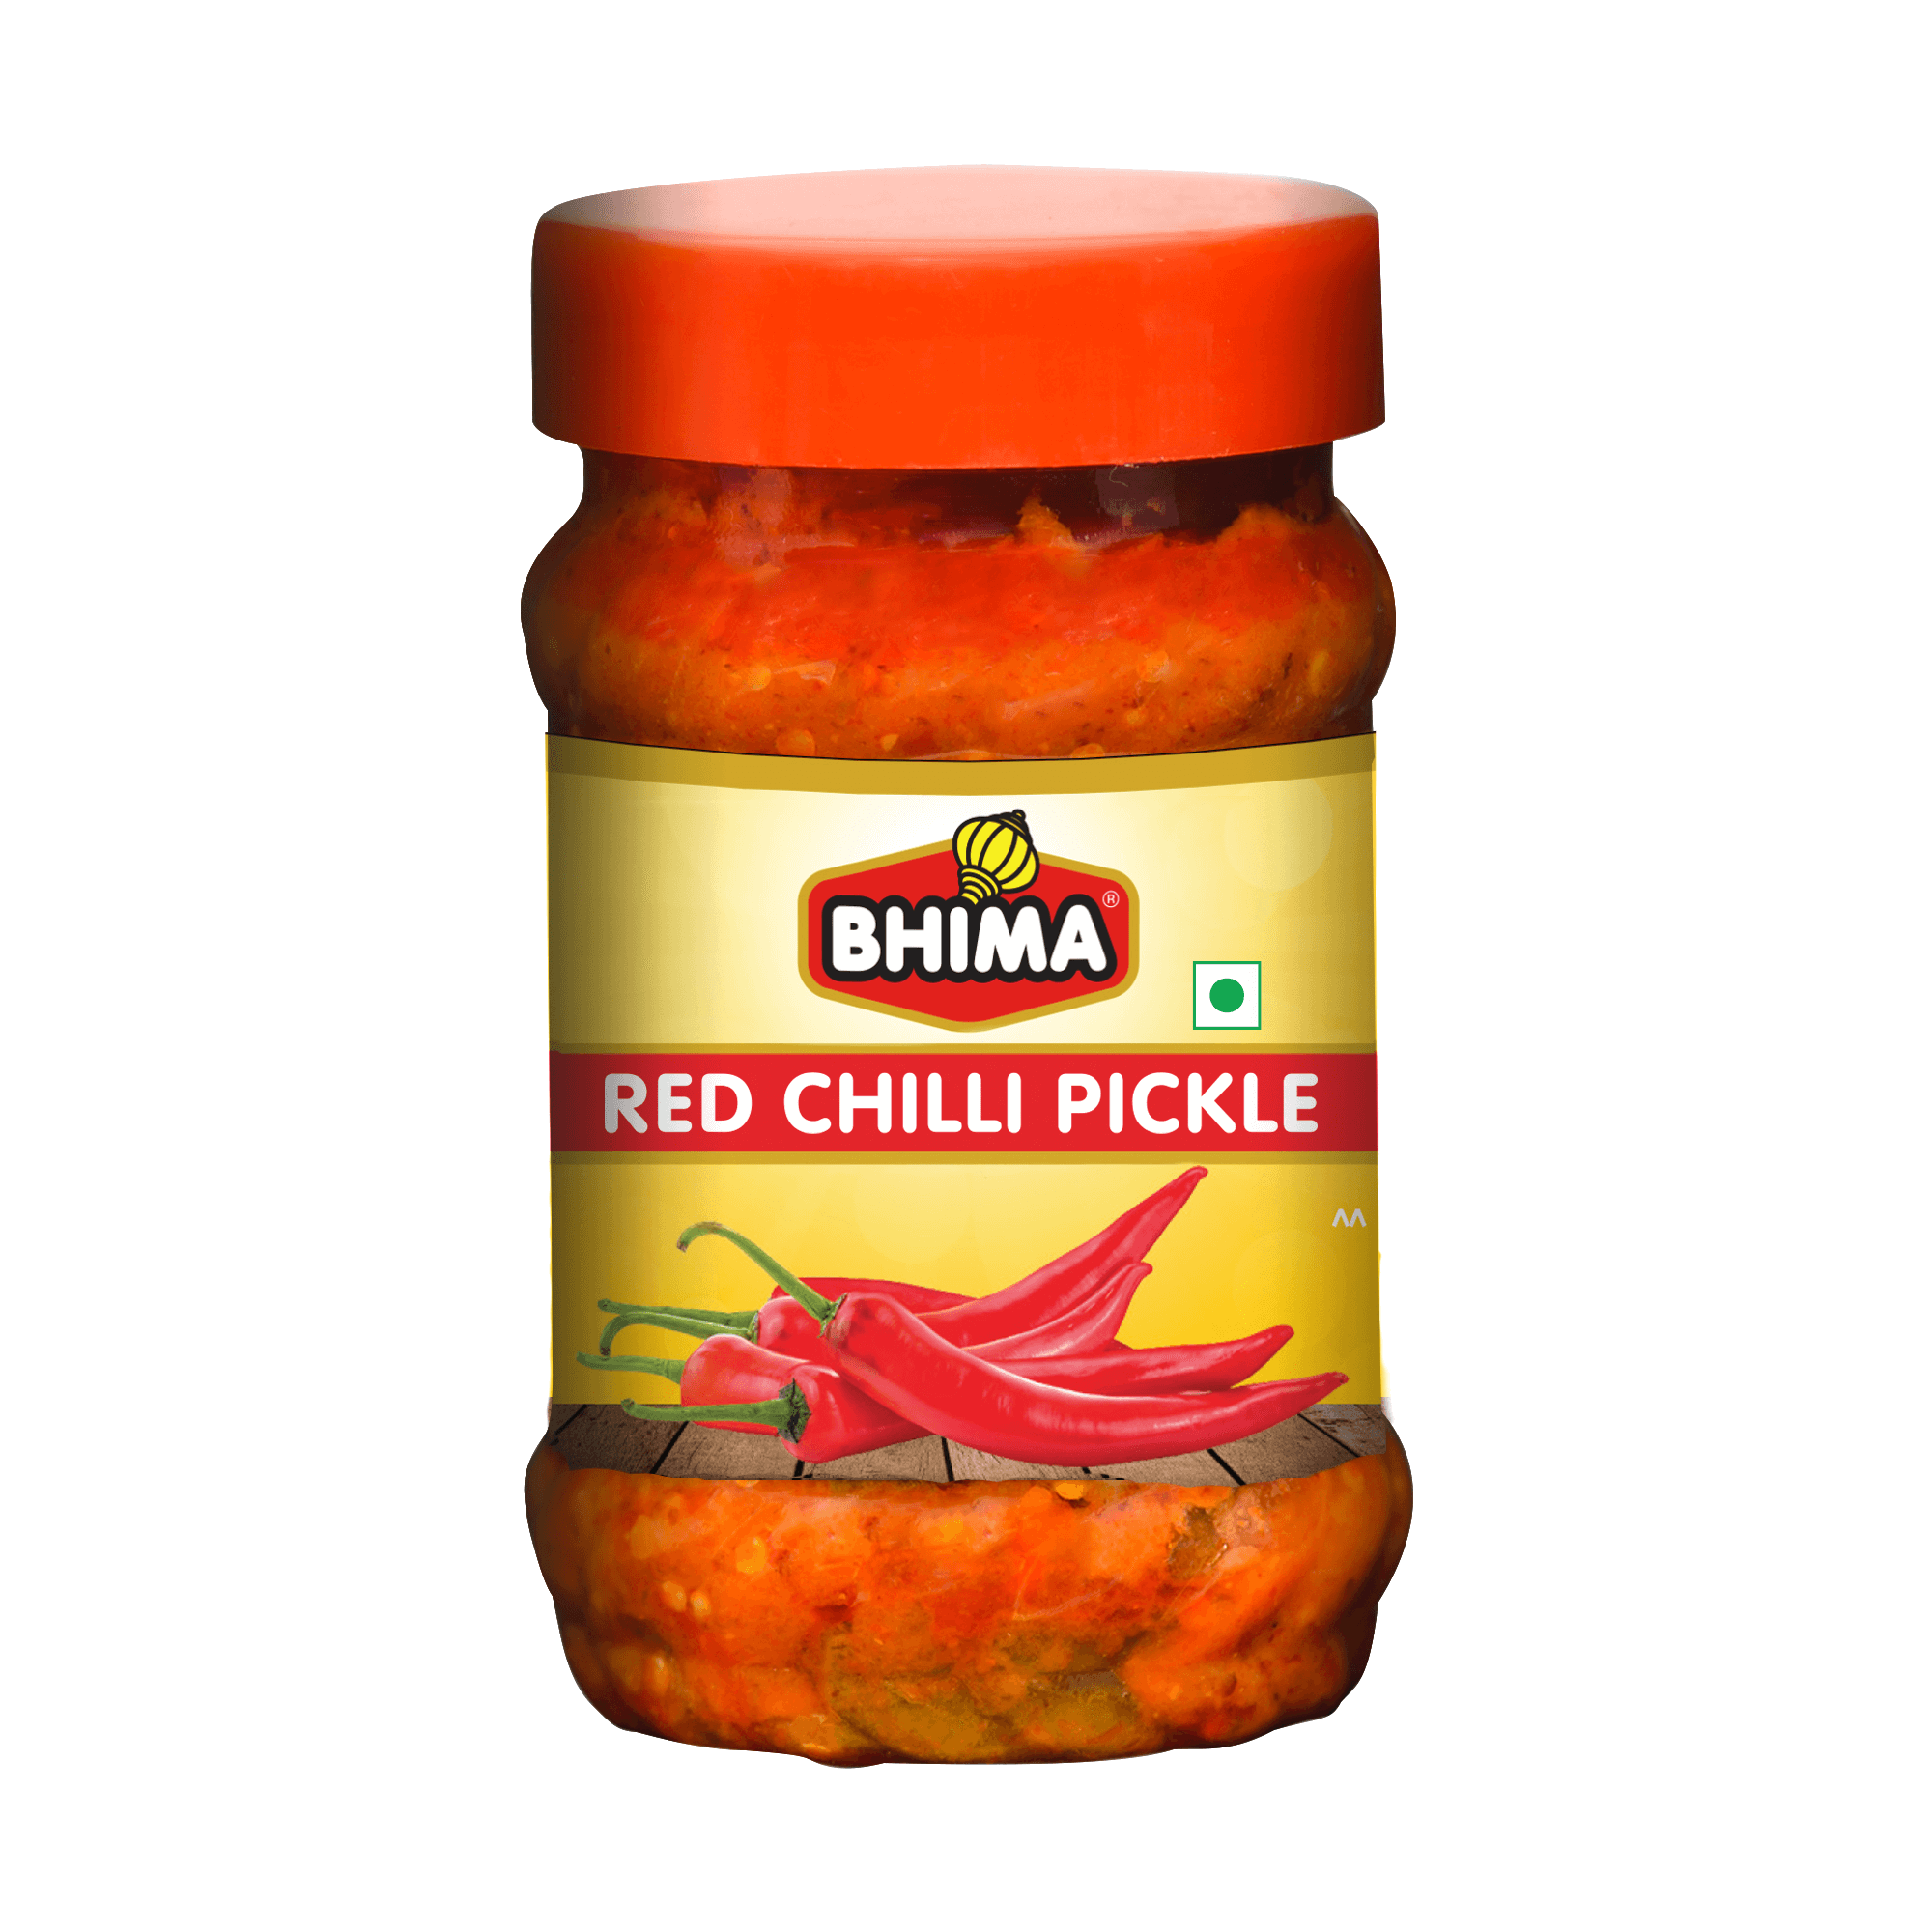 Bhima – Red Chilli